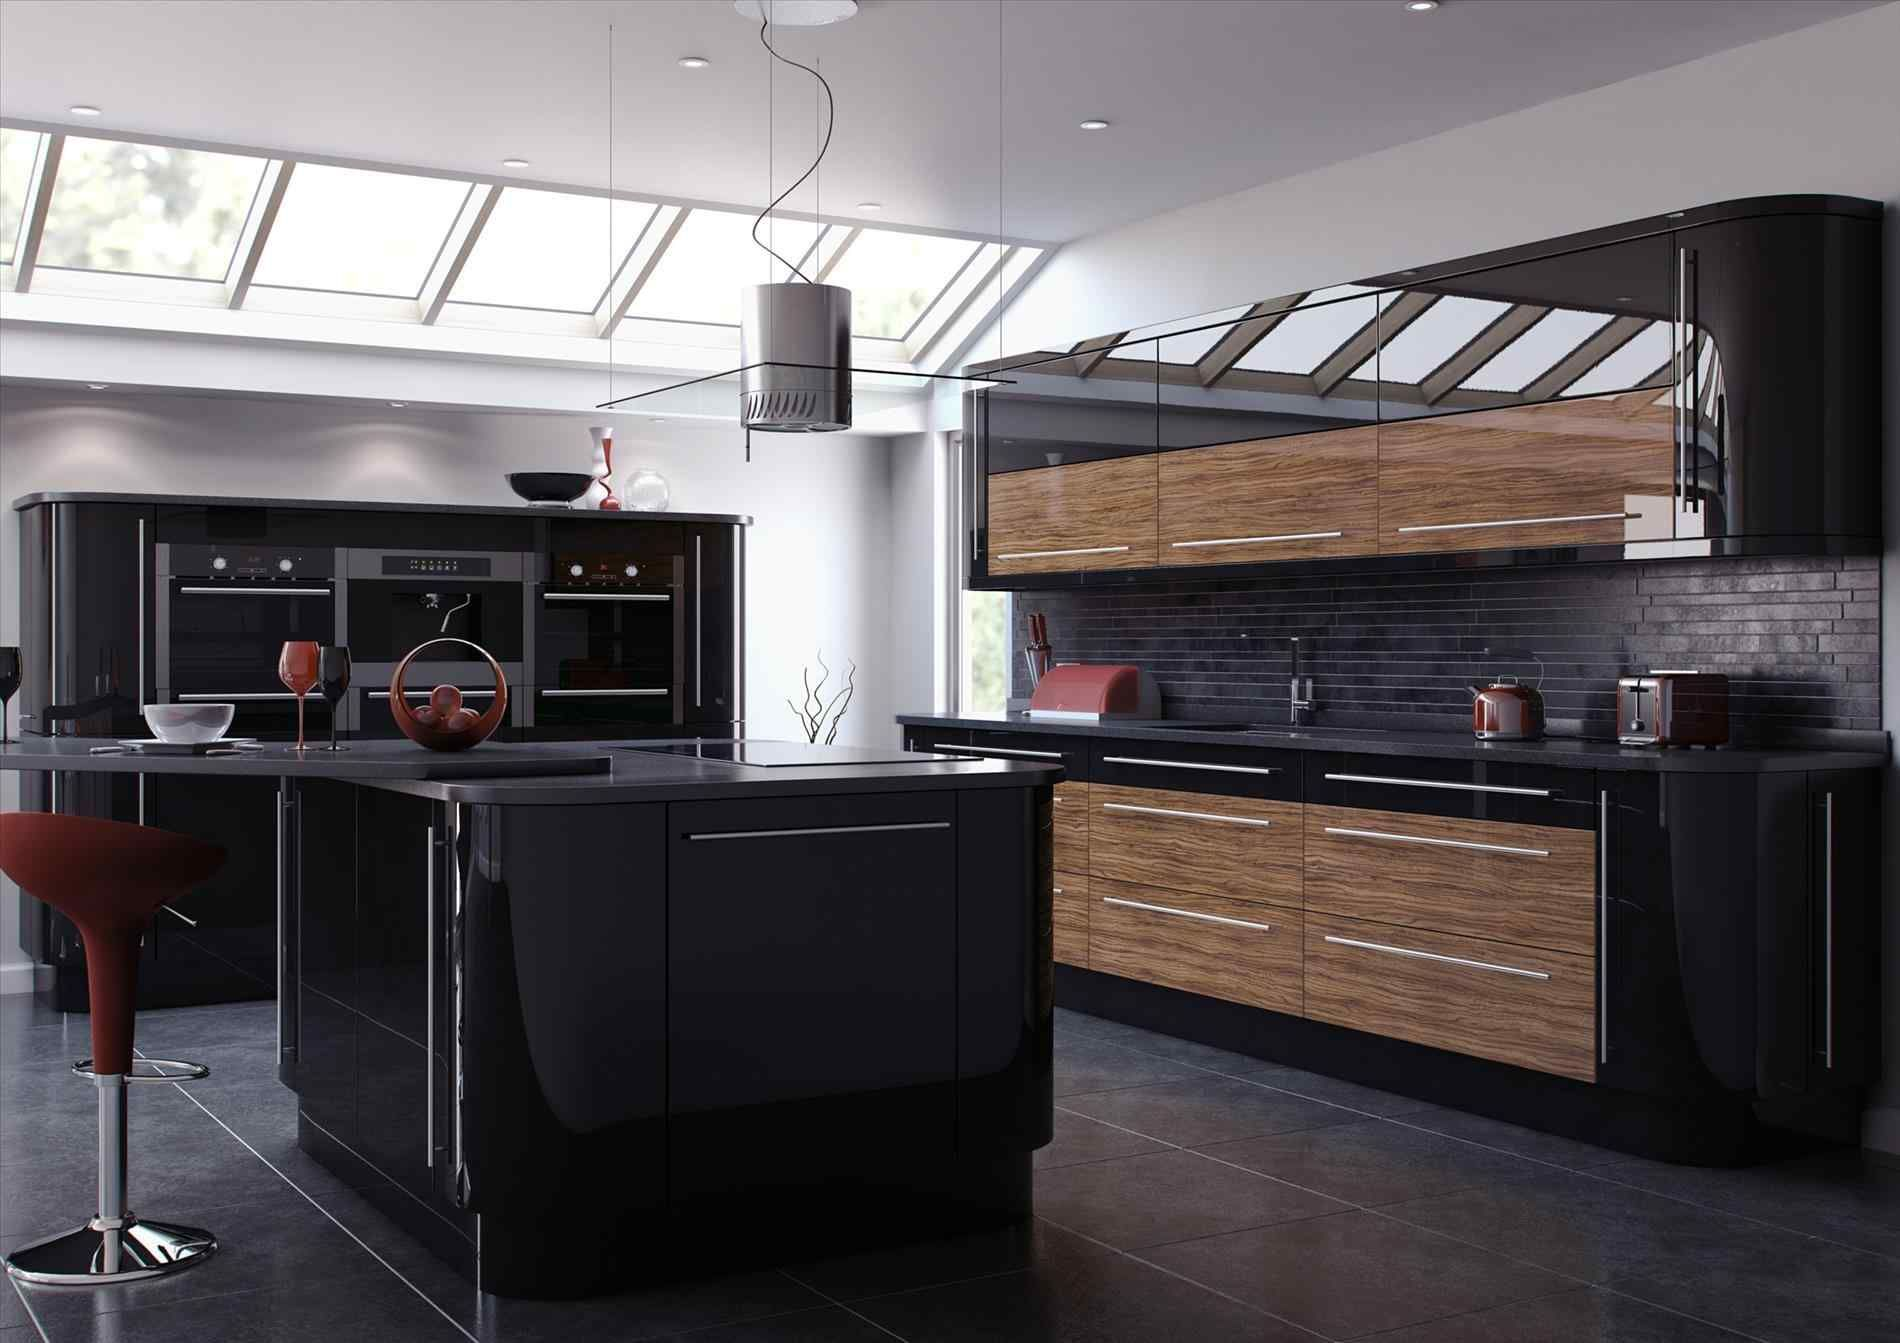 Awesome 13 Black Shiny Kitchen Cabinets Ideas For Stunning Kitchen